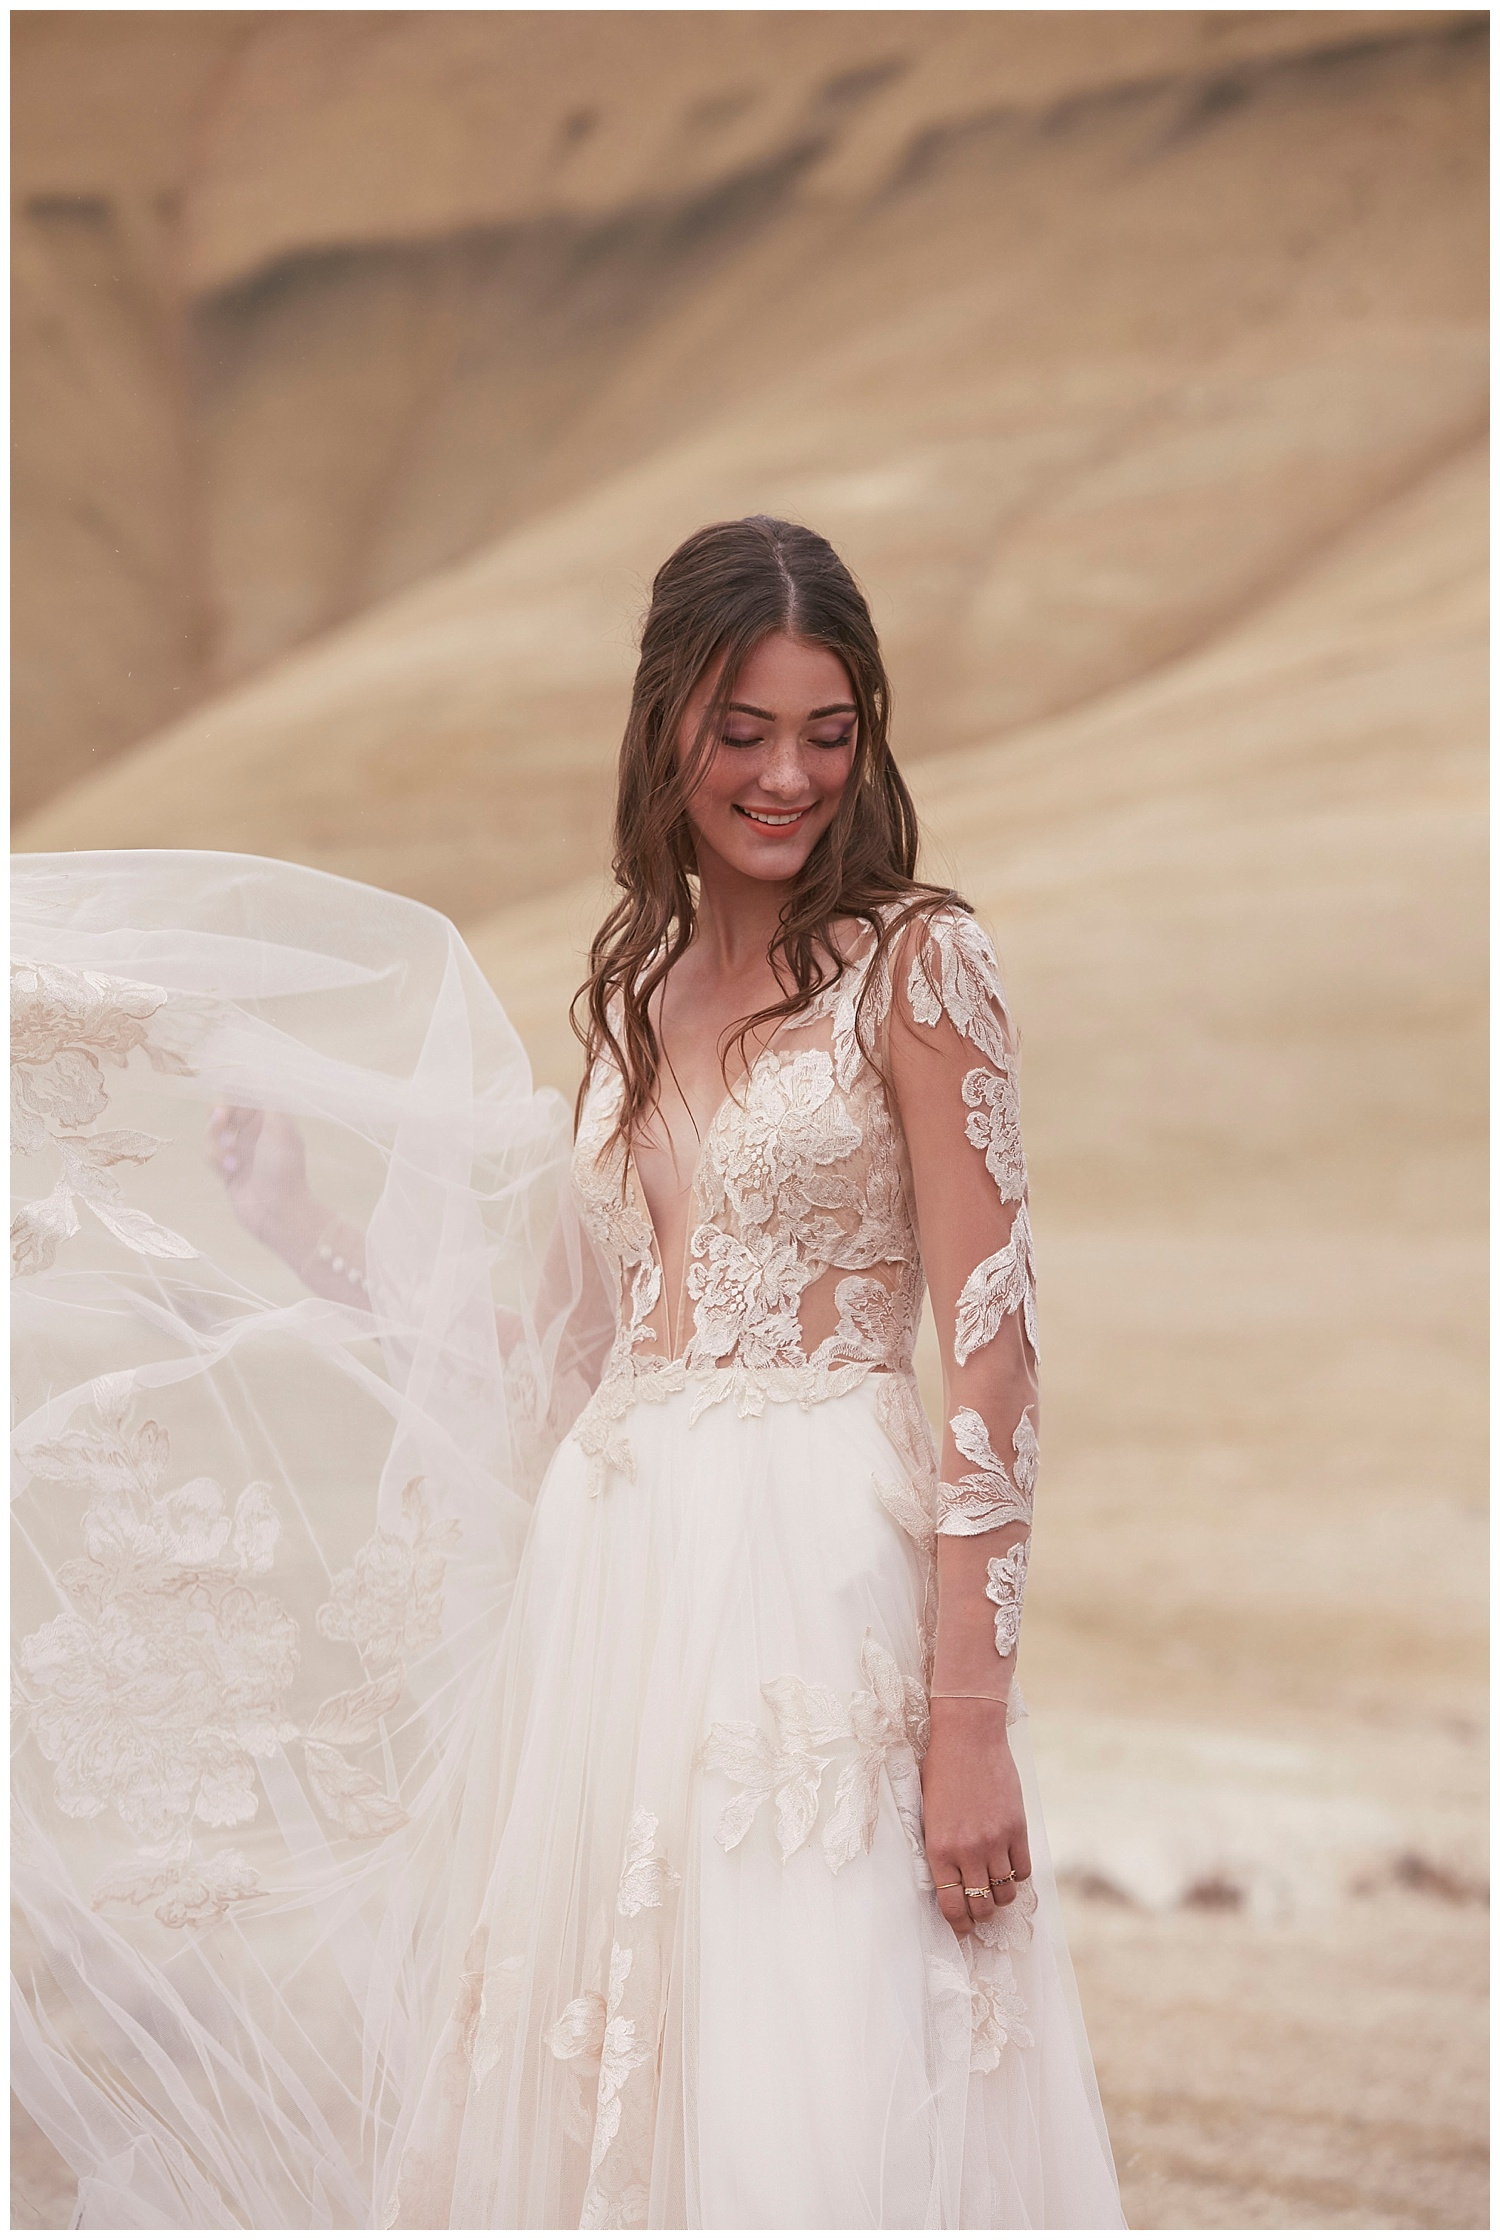 RHAPSODY GOWN BY WILLOWBY